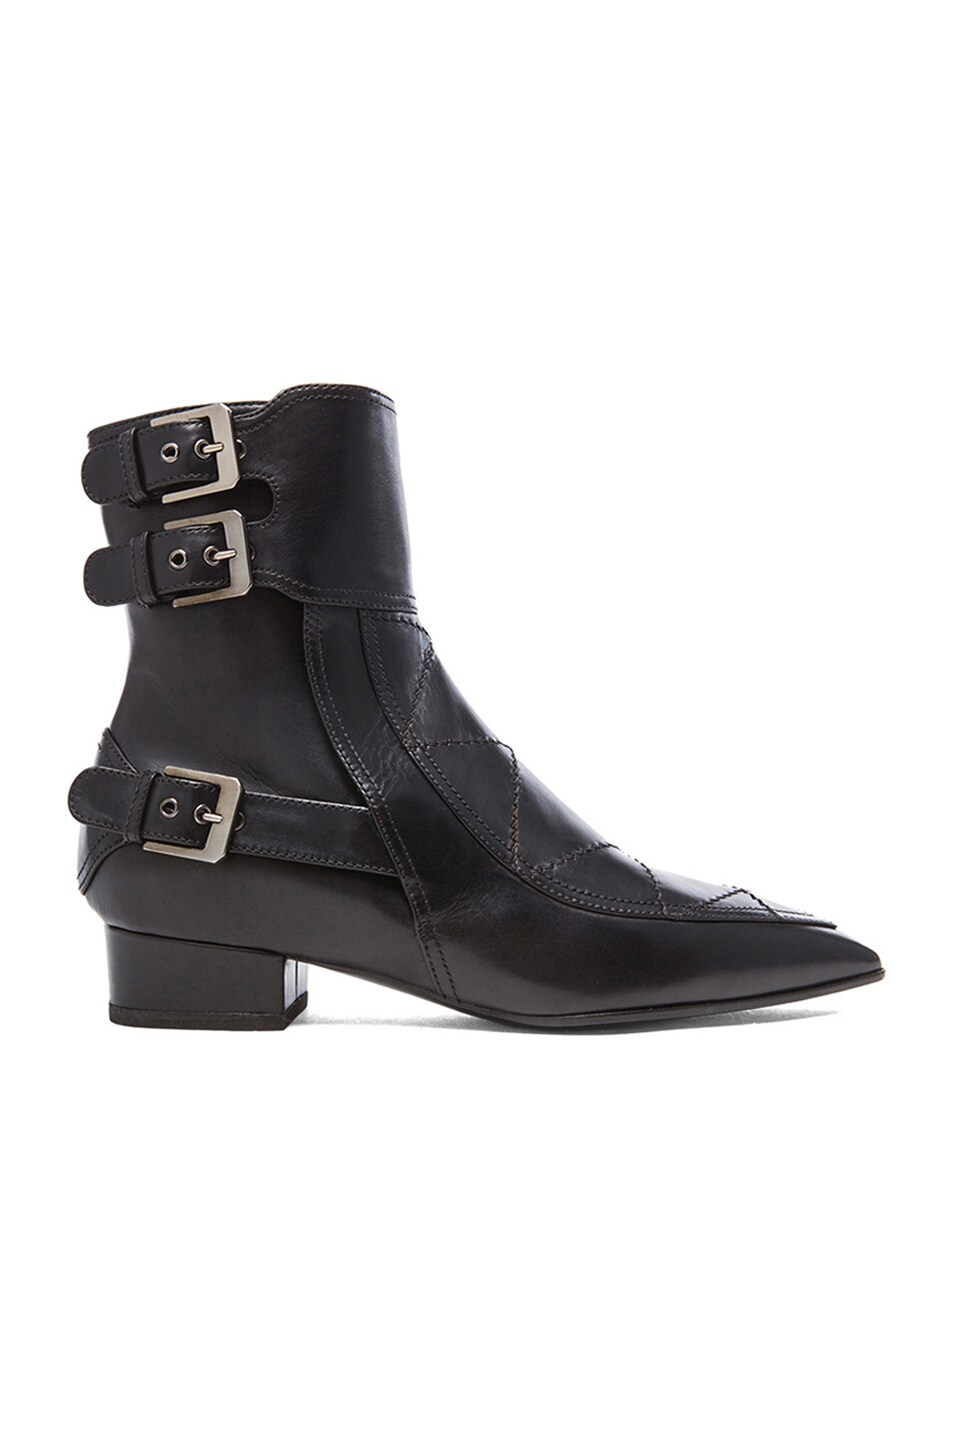 Image 1 of Laurence Dacade Gepetto Leather Booties in Black Leather